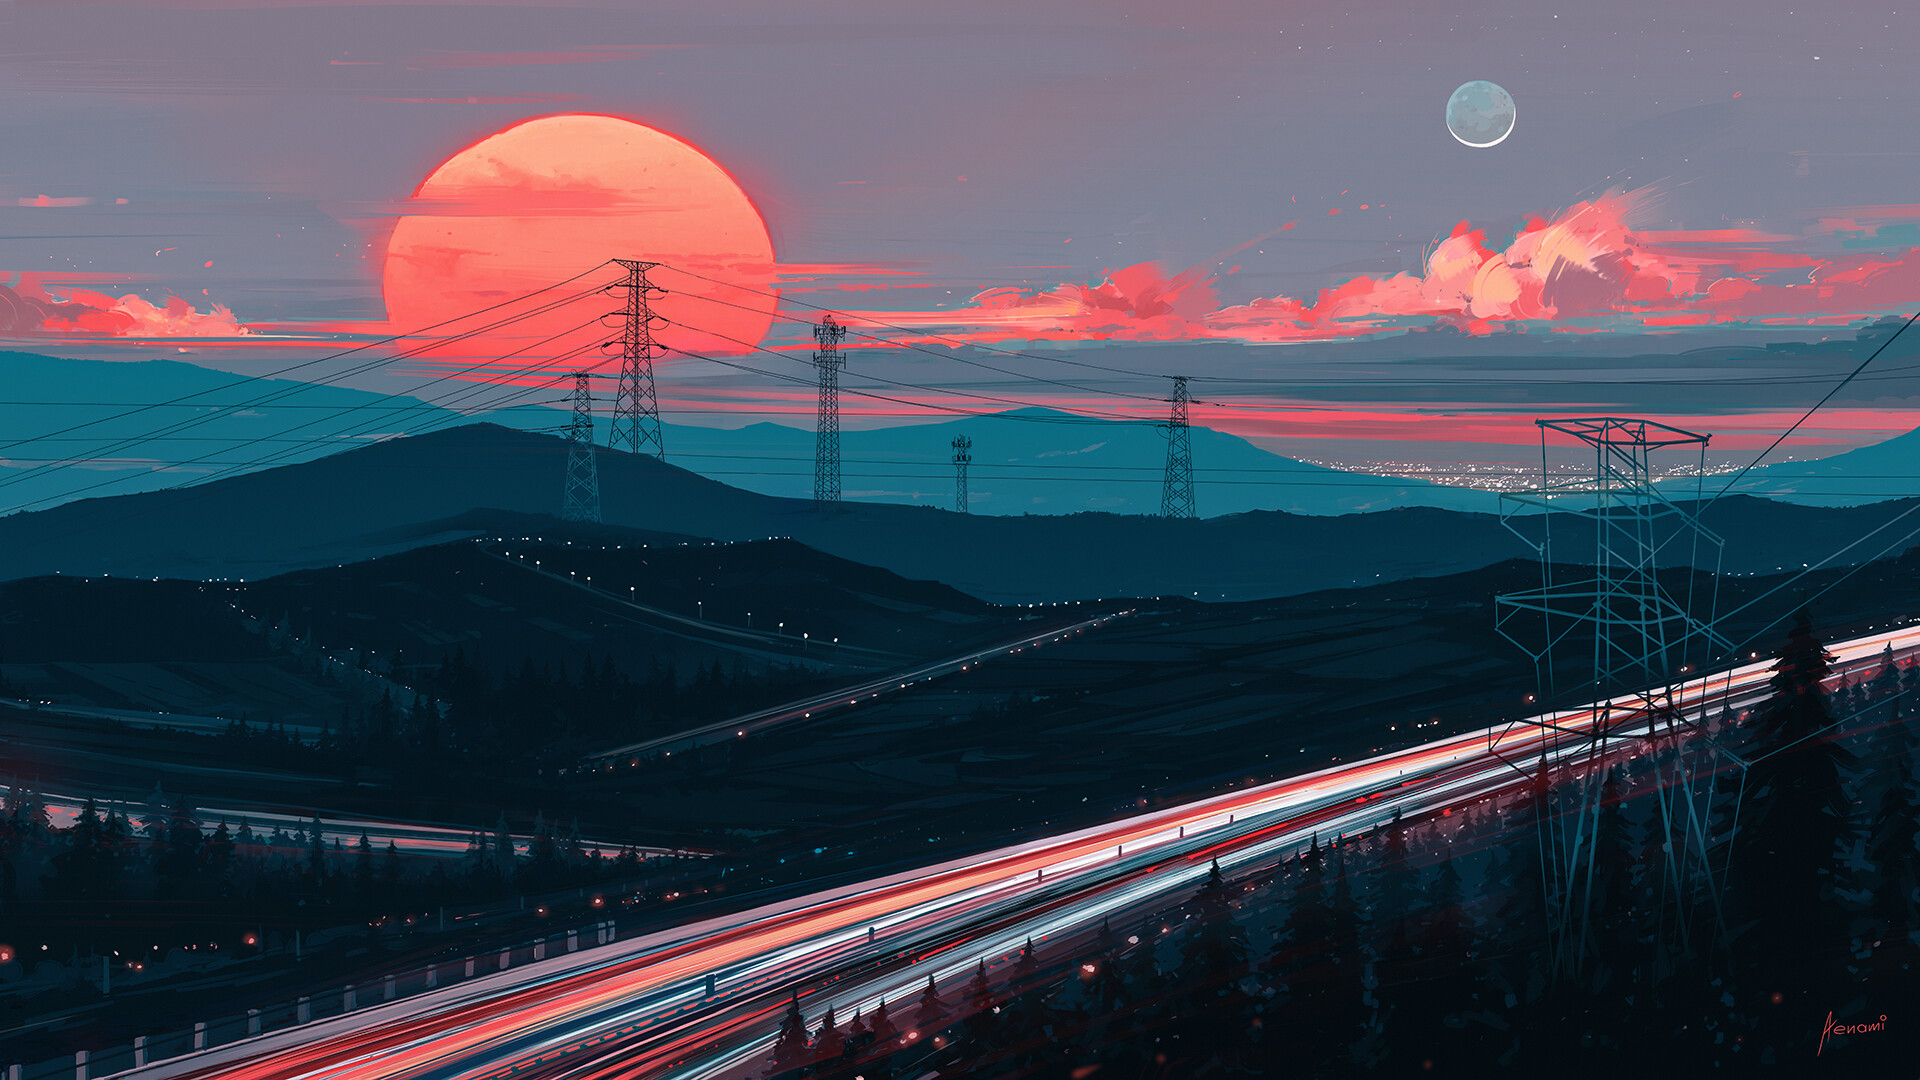 General 1920x1080 Aenami trees forest hills sunset road power lines clouds Moon